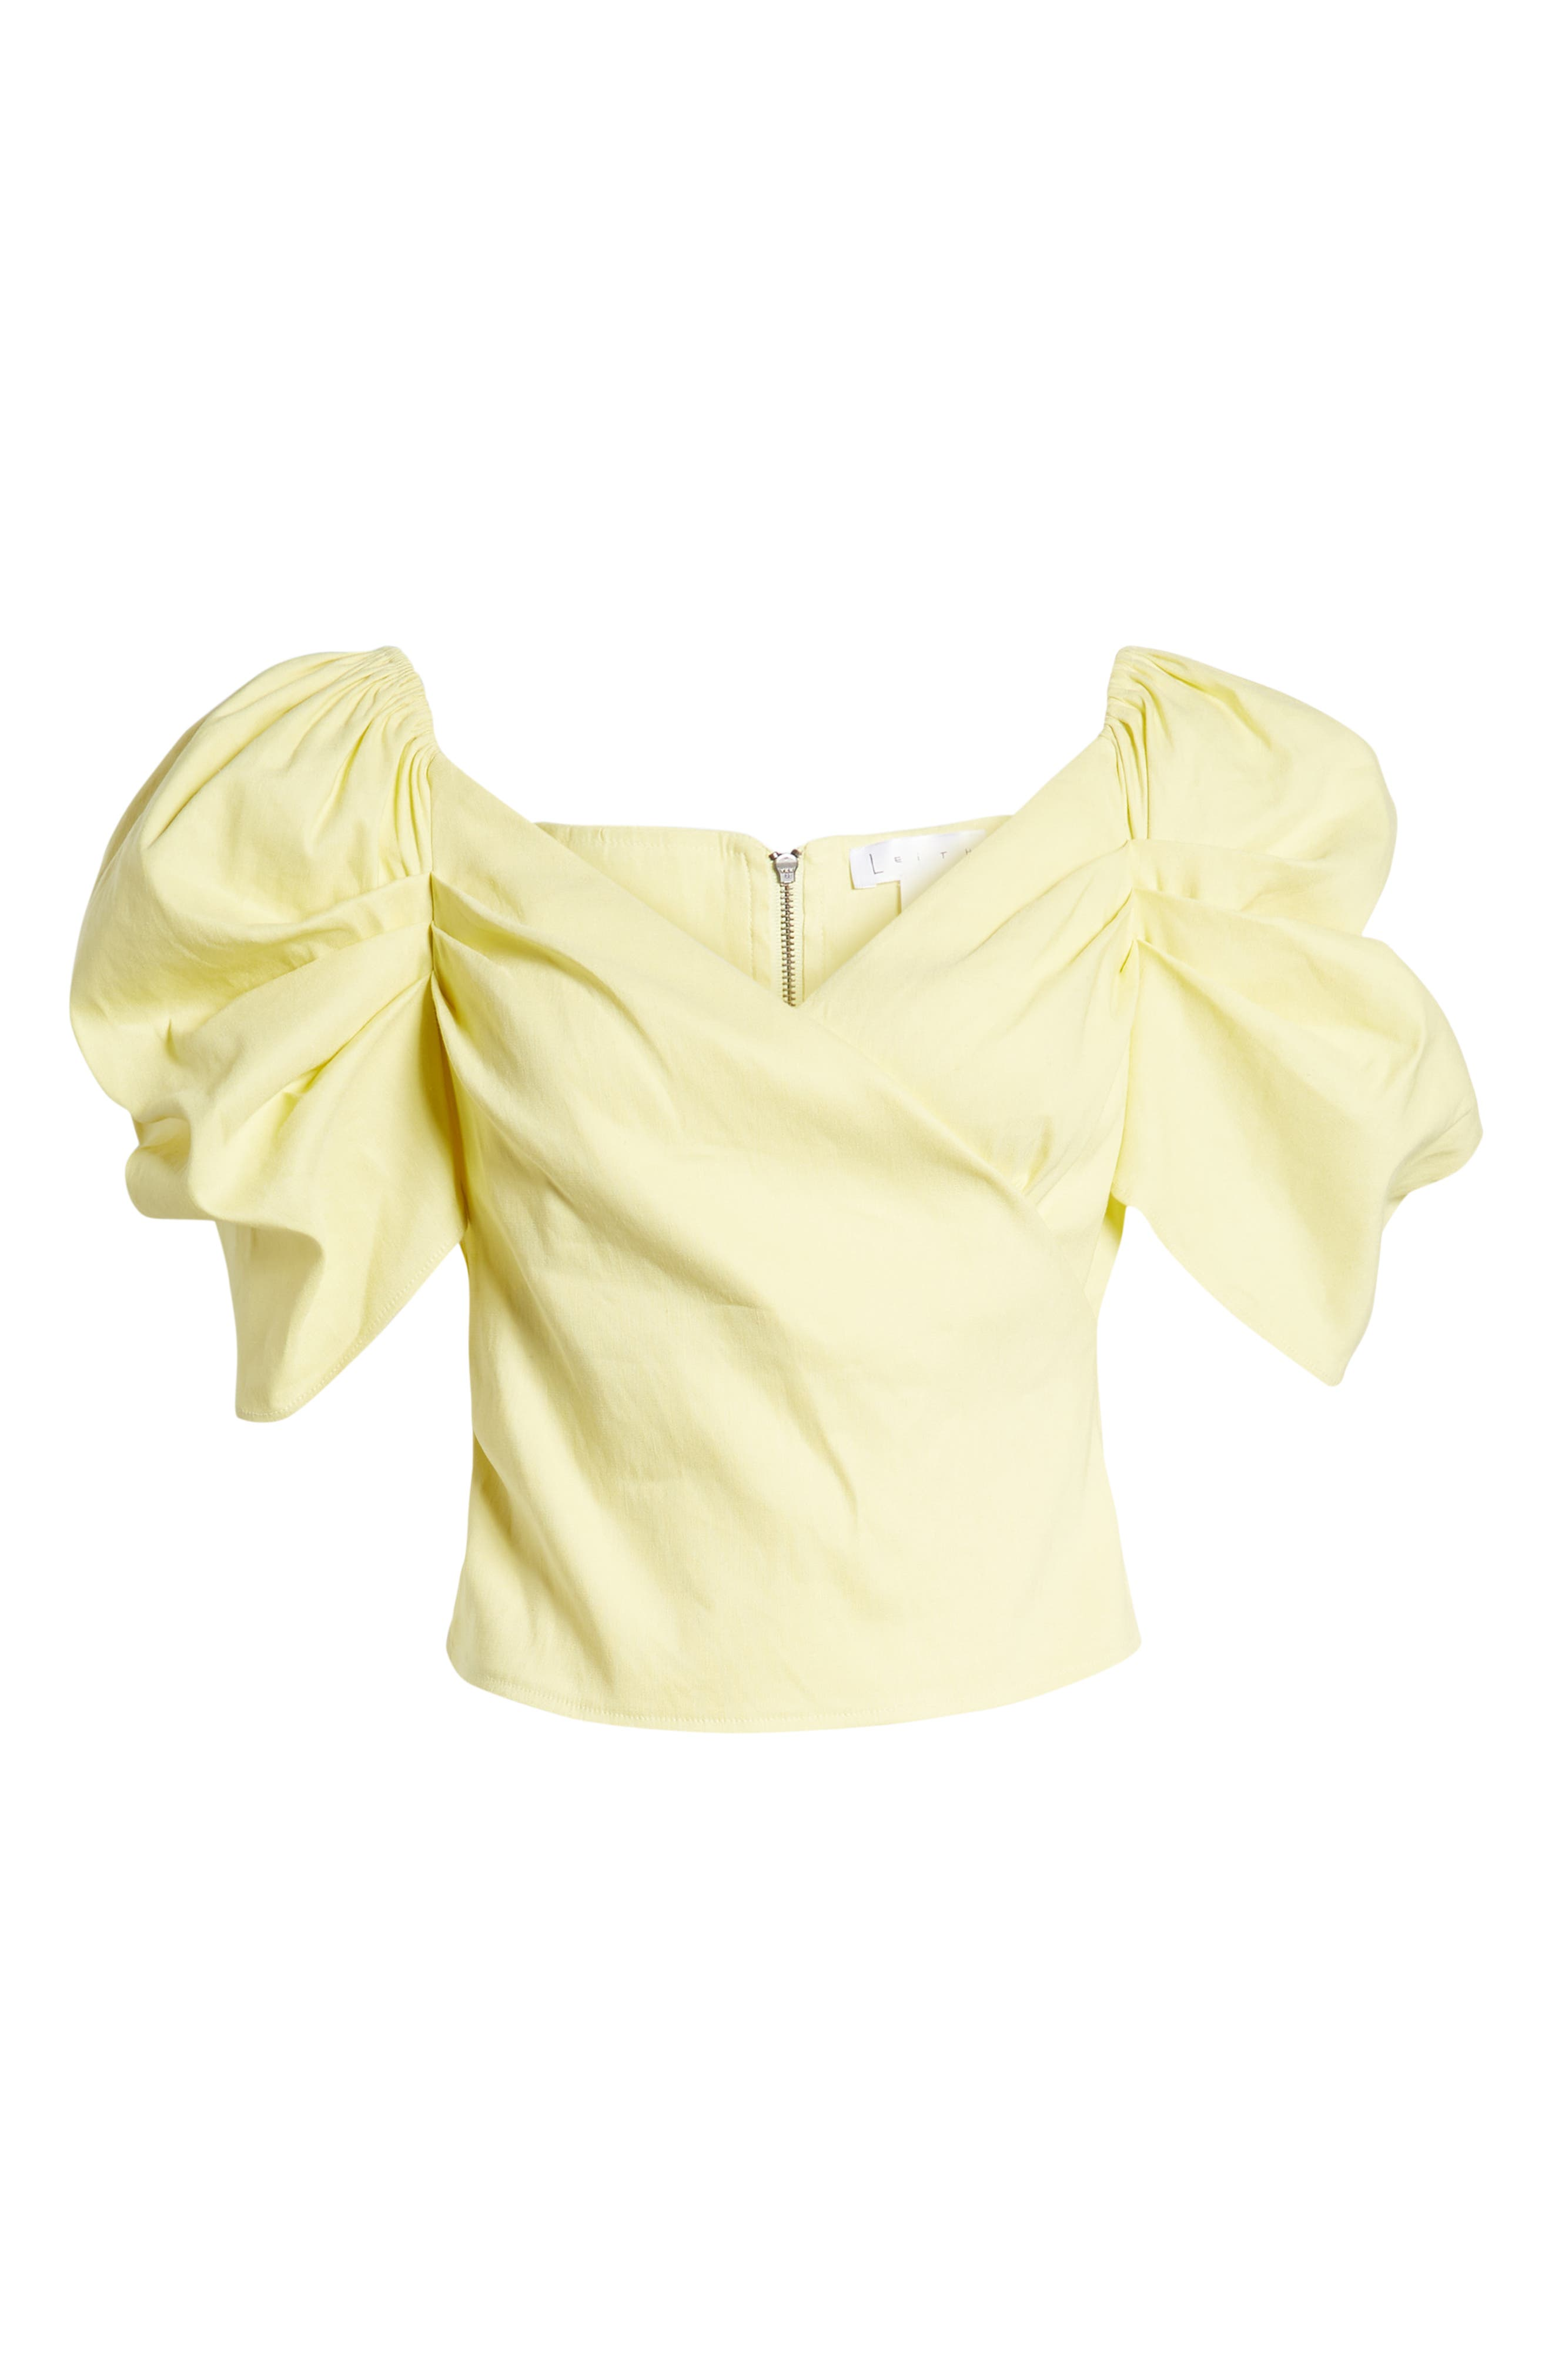 Off the Shoulder Top,                             Alternate thumbnail 7, color,                             YELLOW CANARY